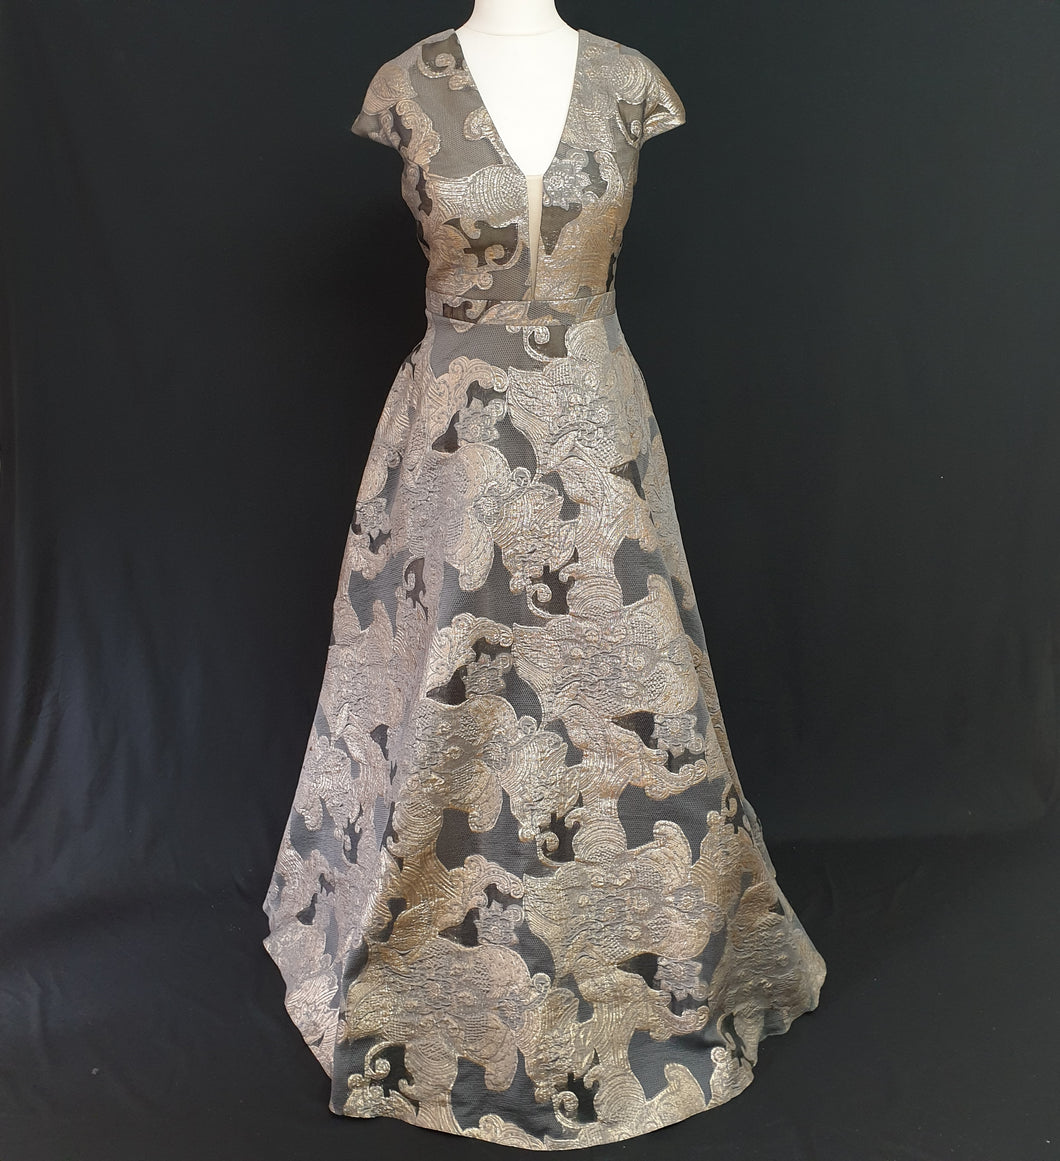 Grey and Gold Jacquard Dress - Cerrura Fashions